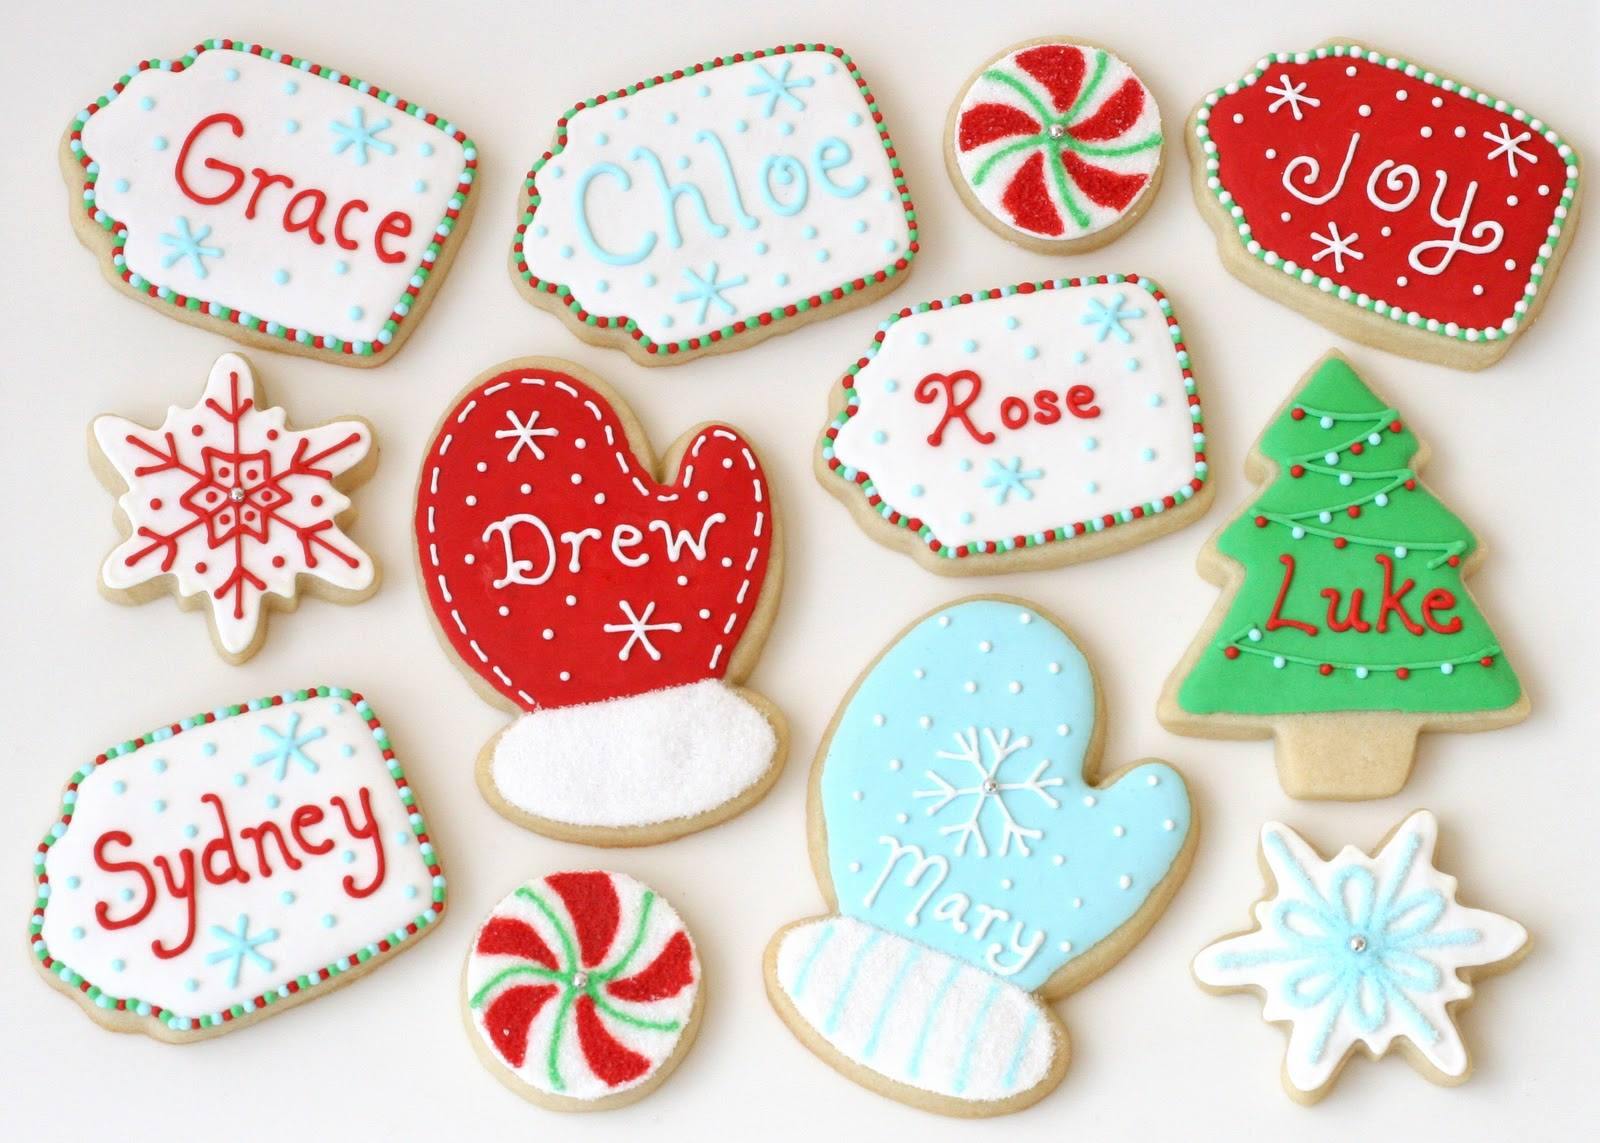 Holiday Winter Cookies Decorated with Names and Snowflakes